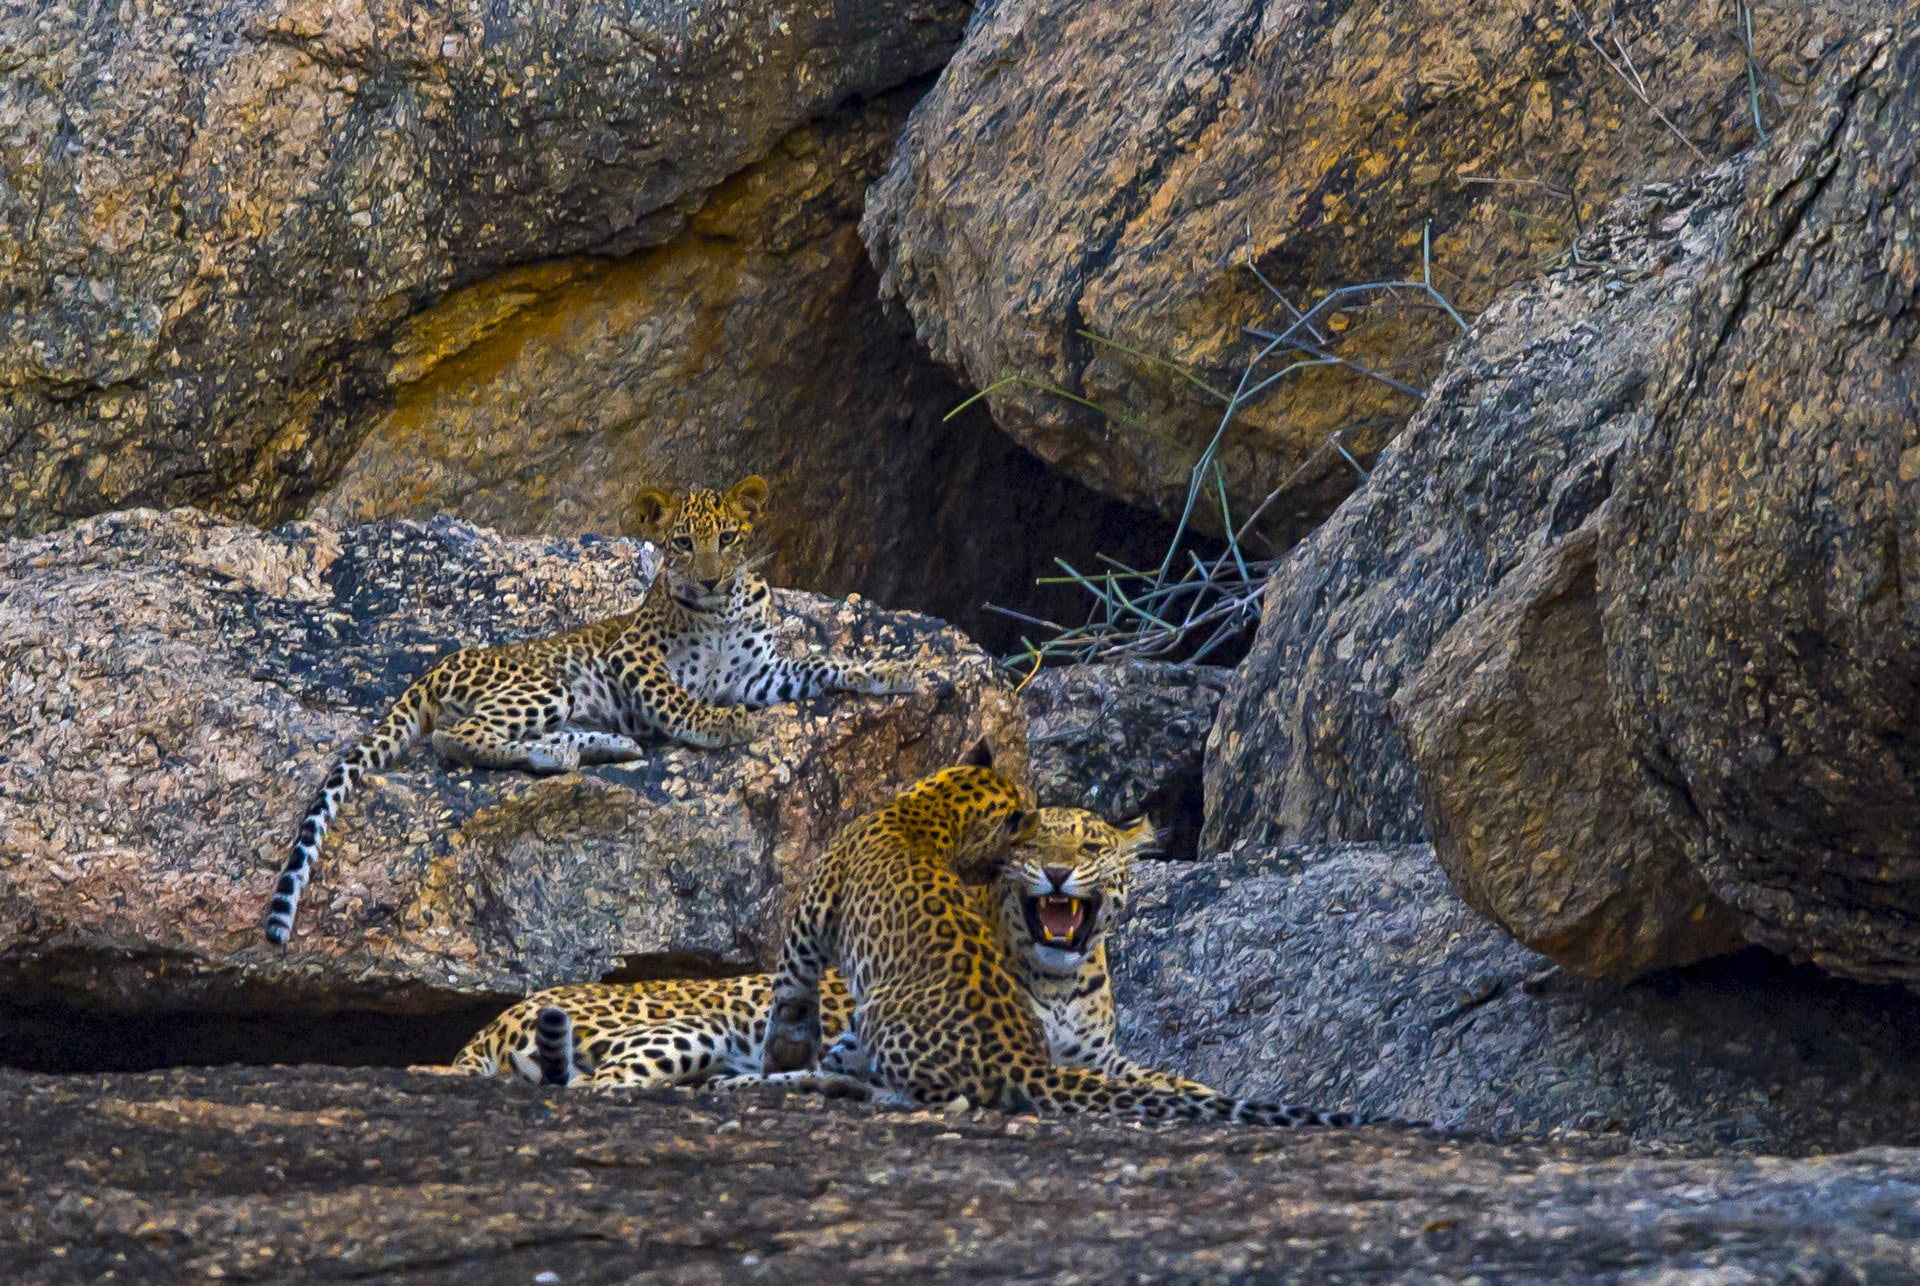 Spotted! A Leopard on the Prowl | RoundGlass | Sustain